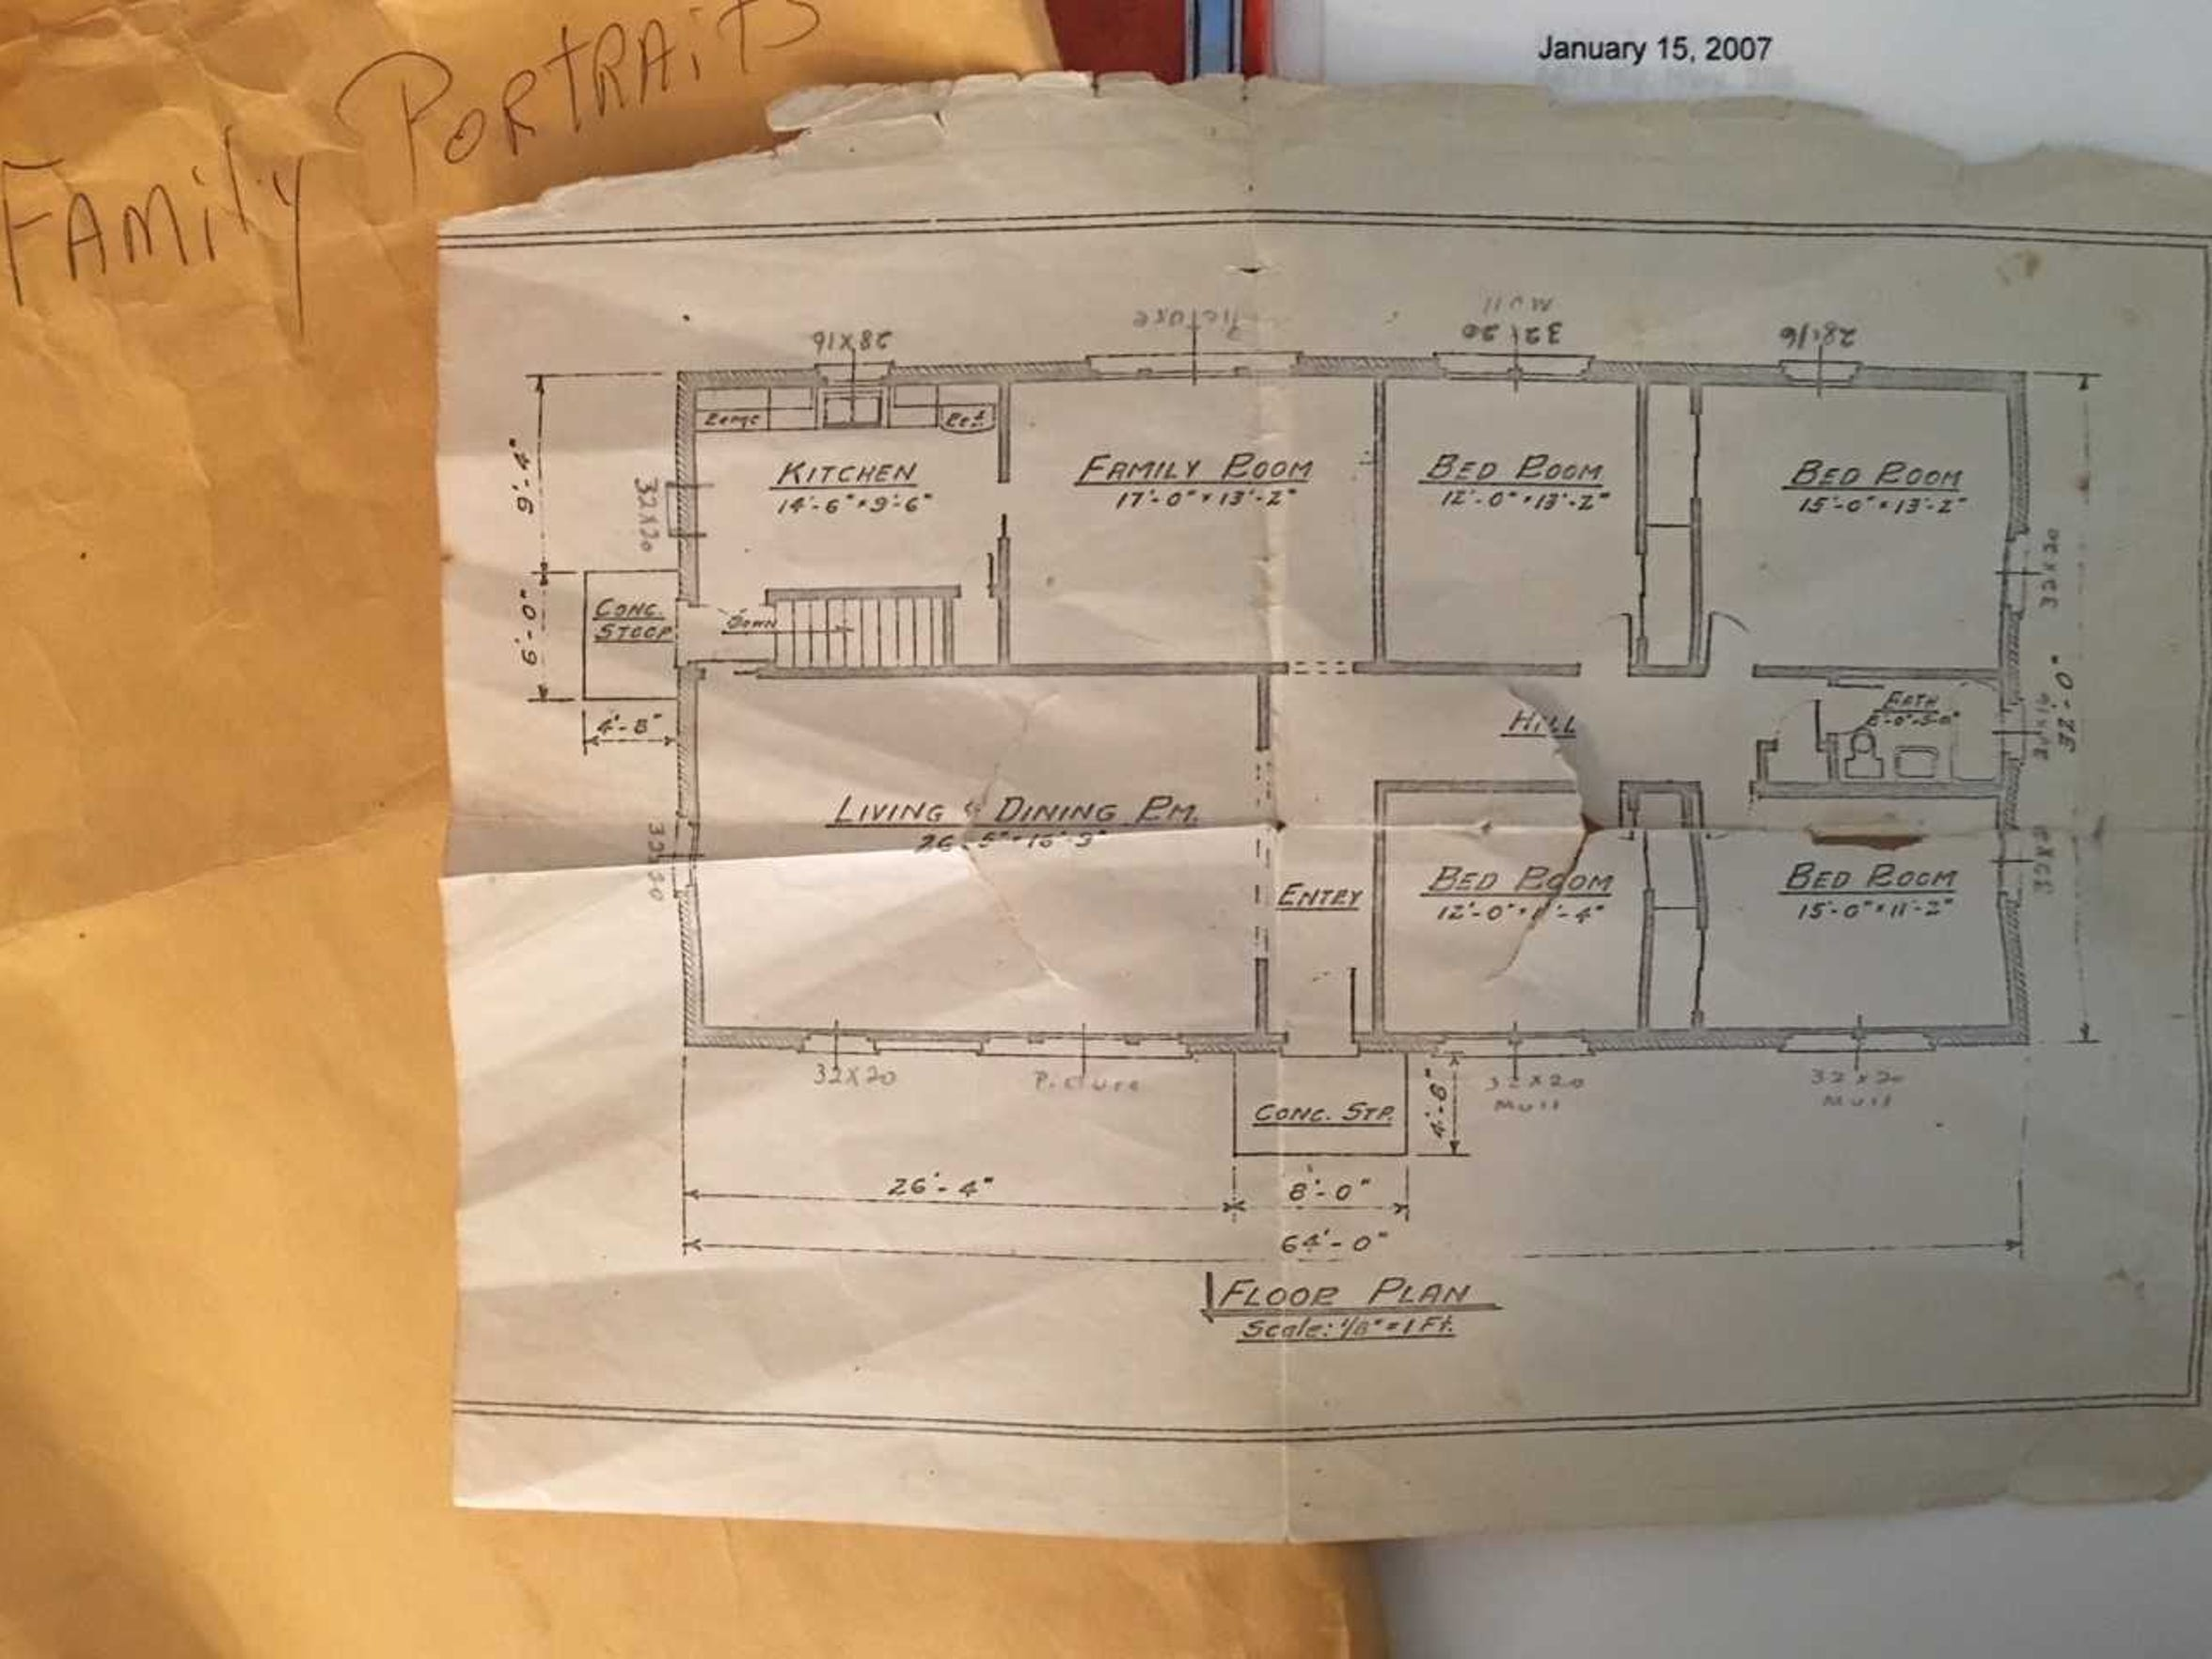 Helen Harney drew the floor plan for the family home